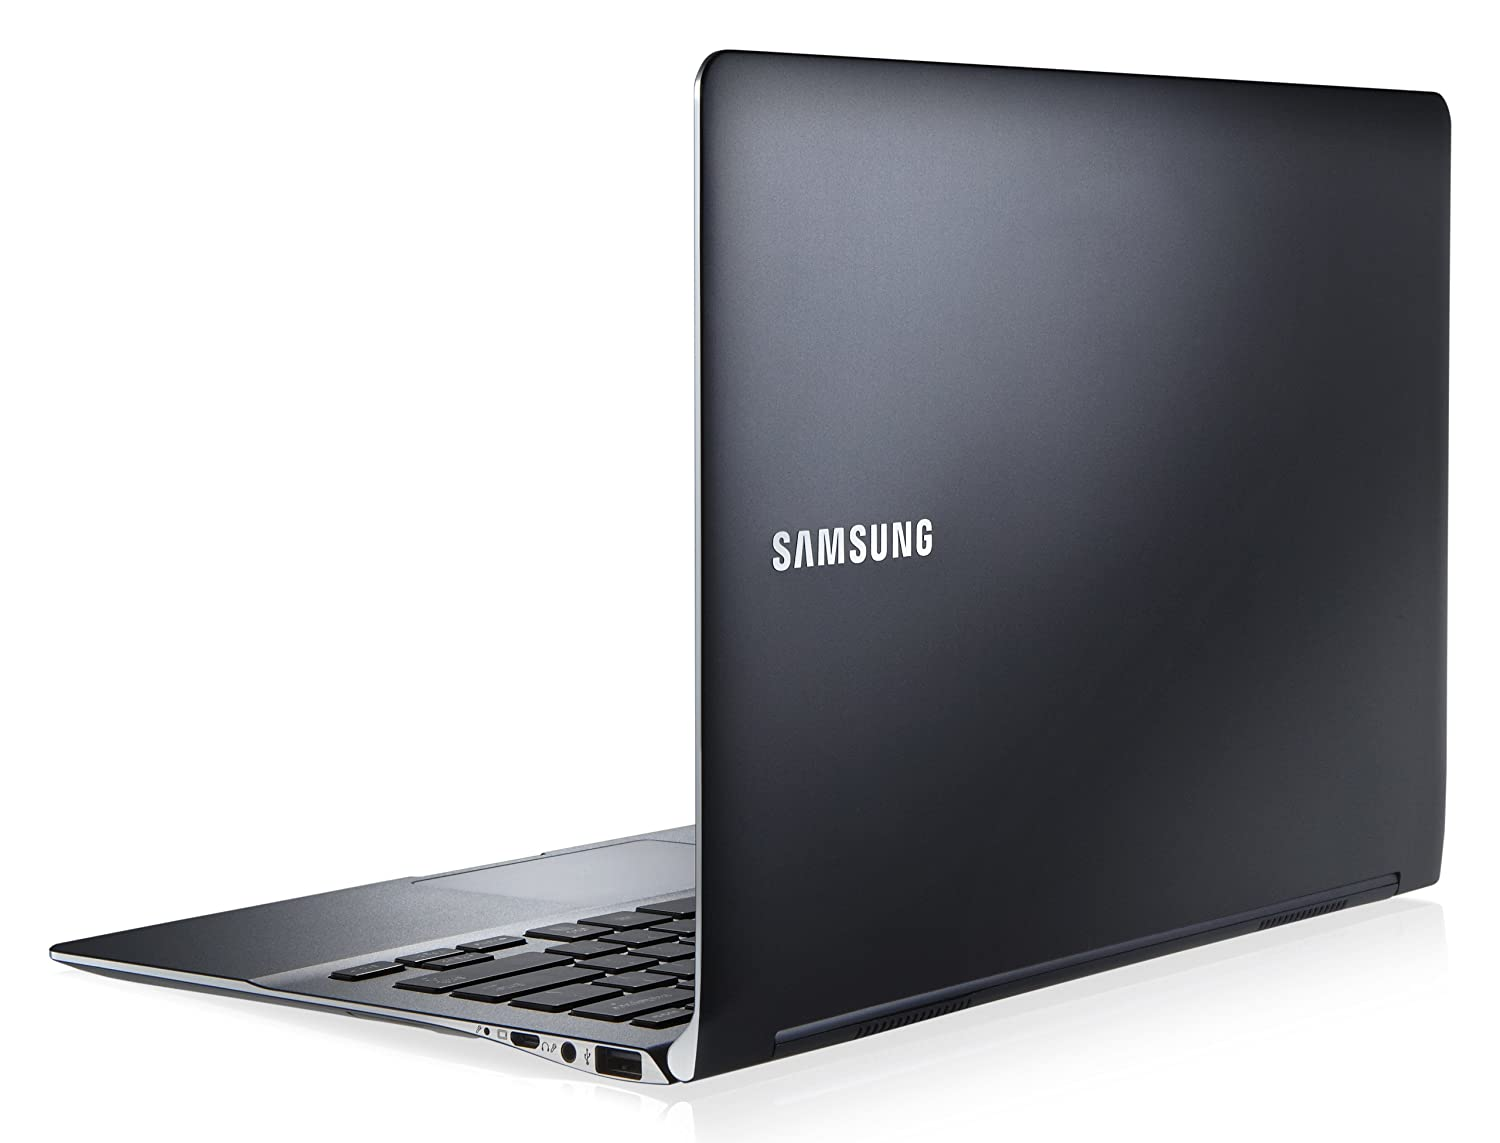 Samsung notebook in singapore - Amazon Com Samsung Series 9 Np900x3c A01us 13 3 Inch Ultrabook Ash Black Computers Accessories